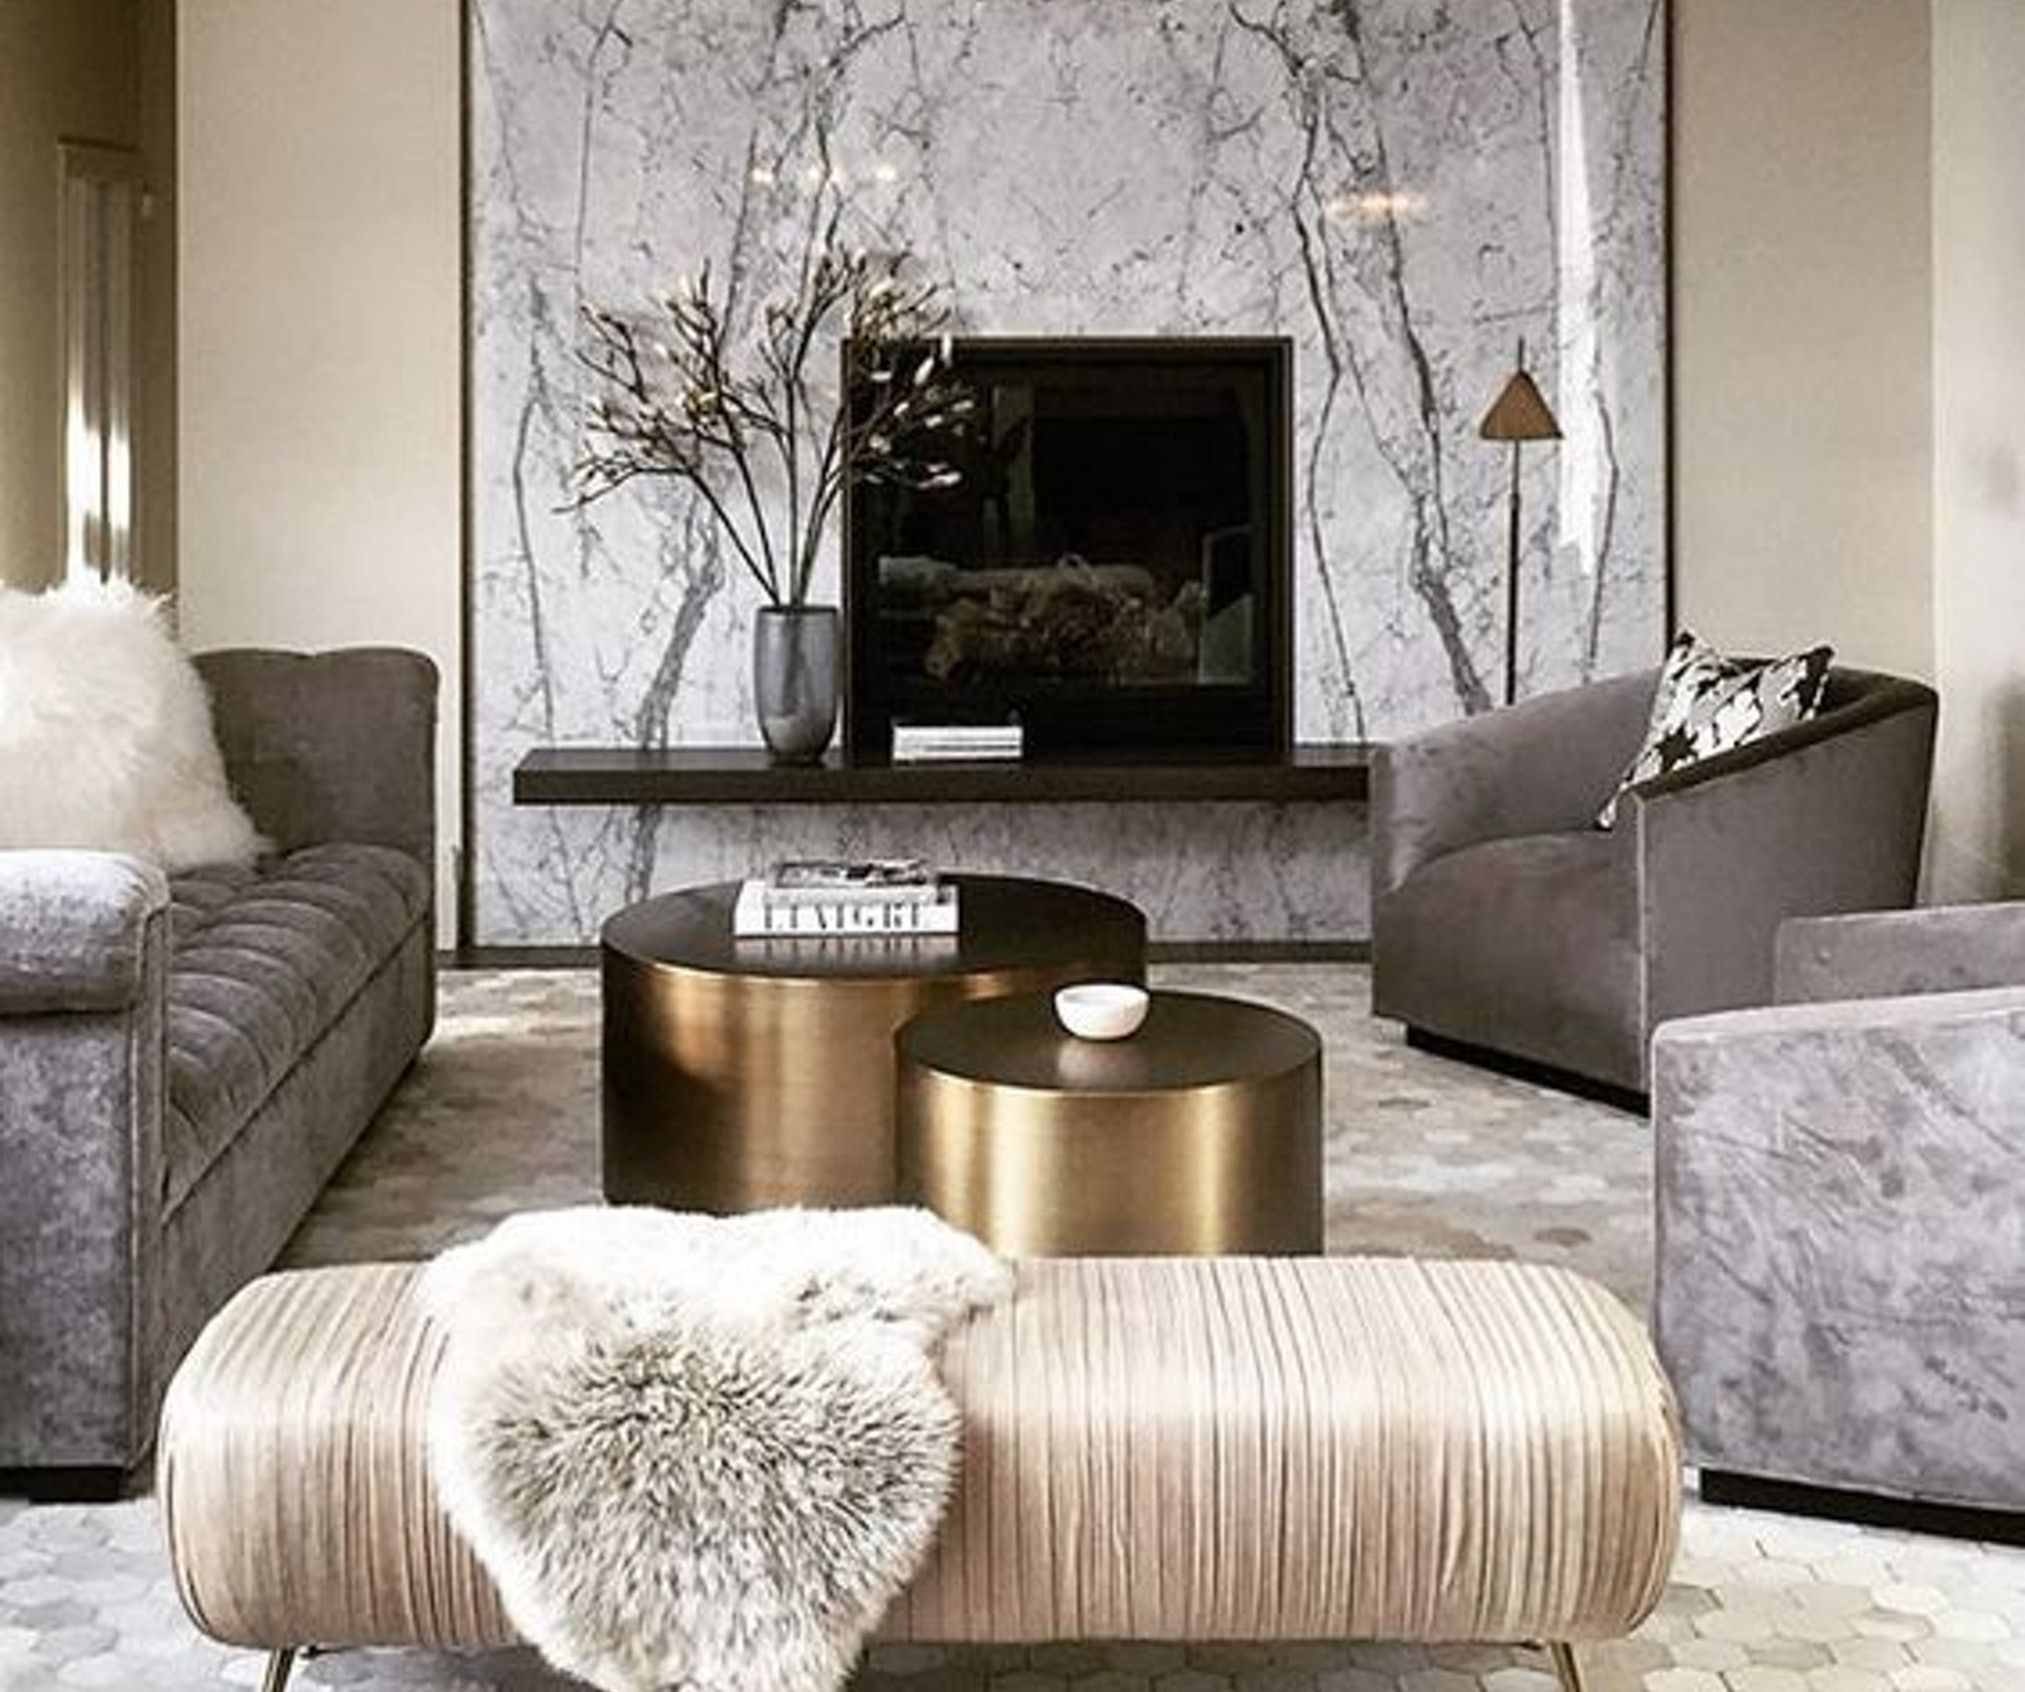 How Should I Decorate My Living Room Quiz Tables For The Interior Design Style What S Your Decorating Decor Want To Know Is Take Havenly Find So You Can Start